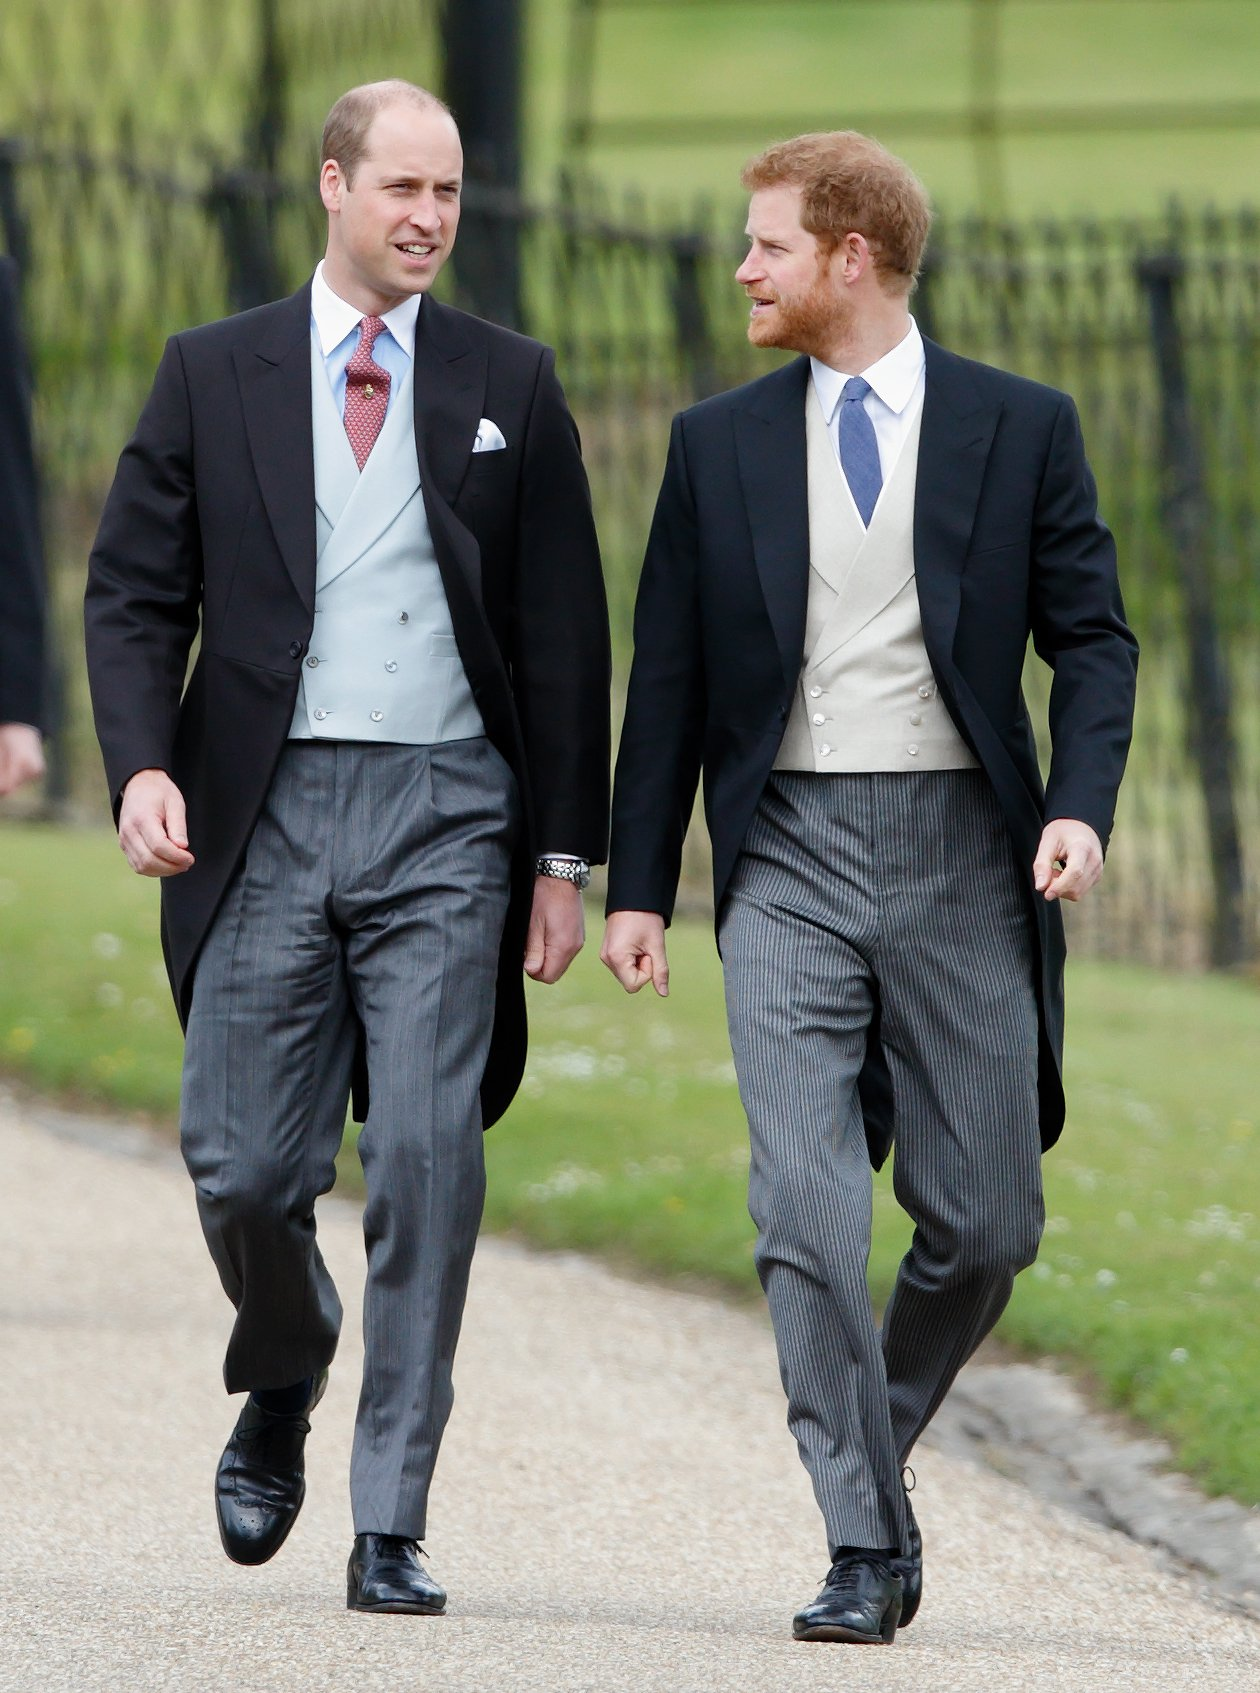 Image Credits: Getty Images / Max Mumby / Indigo   Prince William, Duke of Cambridge and Prince Harry attend the wedding of Pippa Middleton and James Matthews at St Mark's Church on May 20, 2017 in Englefield Green, England.